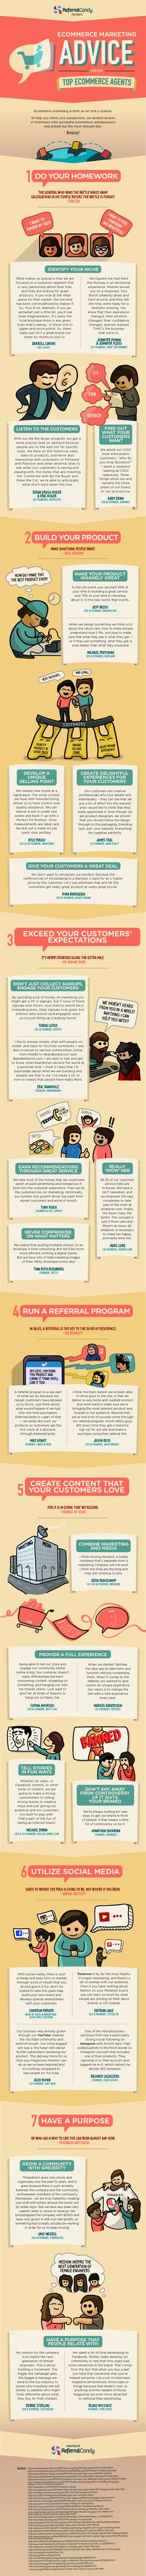 eCommerce Marketing Advice from Top Industry Experts [INFOGRAPHIC]